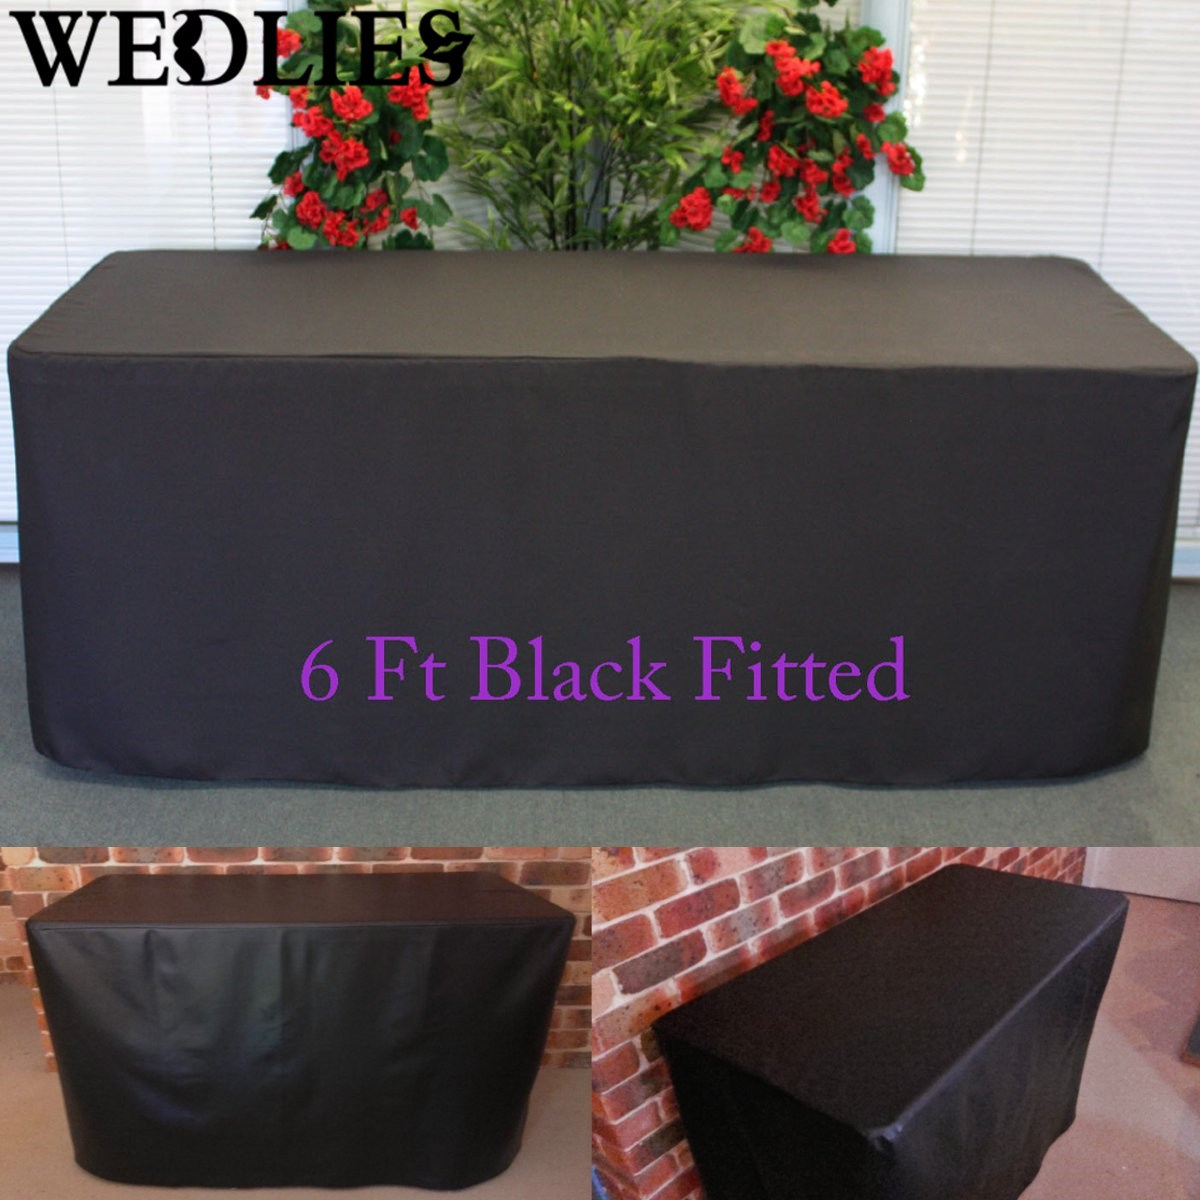 2Pcs/Set 6FT Fitted Black Trestle Table Cover Foldable Wedding Party Table Cloth Black Outdoor Furniture Cover 183X76X72cm(China (Mainland))